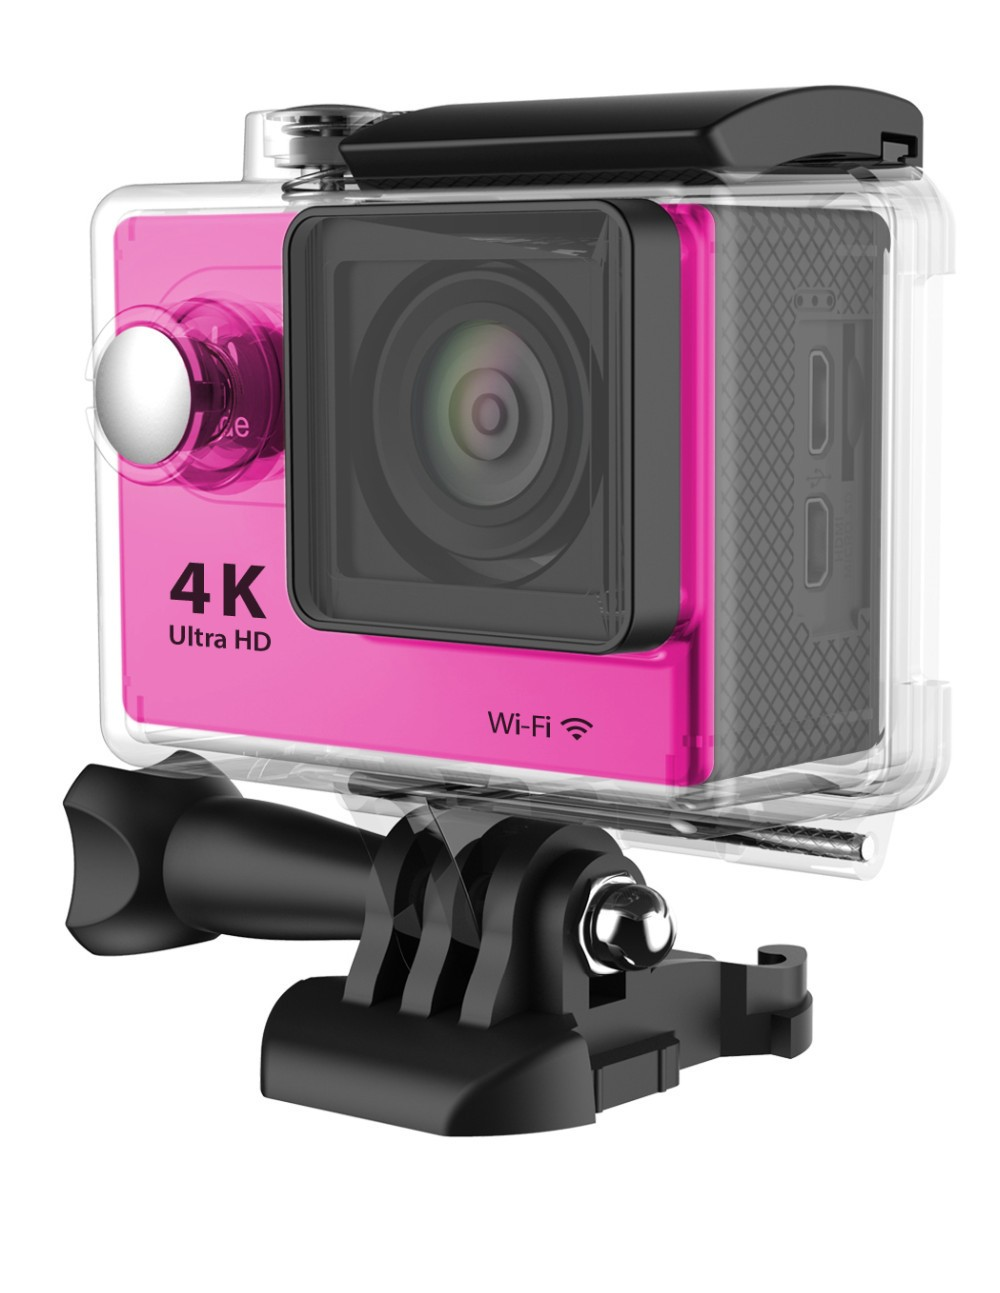 Gopro Hero 4 Style Ultra Hd 4k Video 170 Degrees Wide Angle Sports Programmable Integrated Circuit 131721 Electronics 77 Htb1fsirivxxxxcixfxxq6xxfxxxp Htb1npcuivxxxxbaxpxxq6xxfxxxg Htb1osilivxxxxbvxvxxq6xxfxxxo